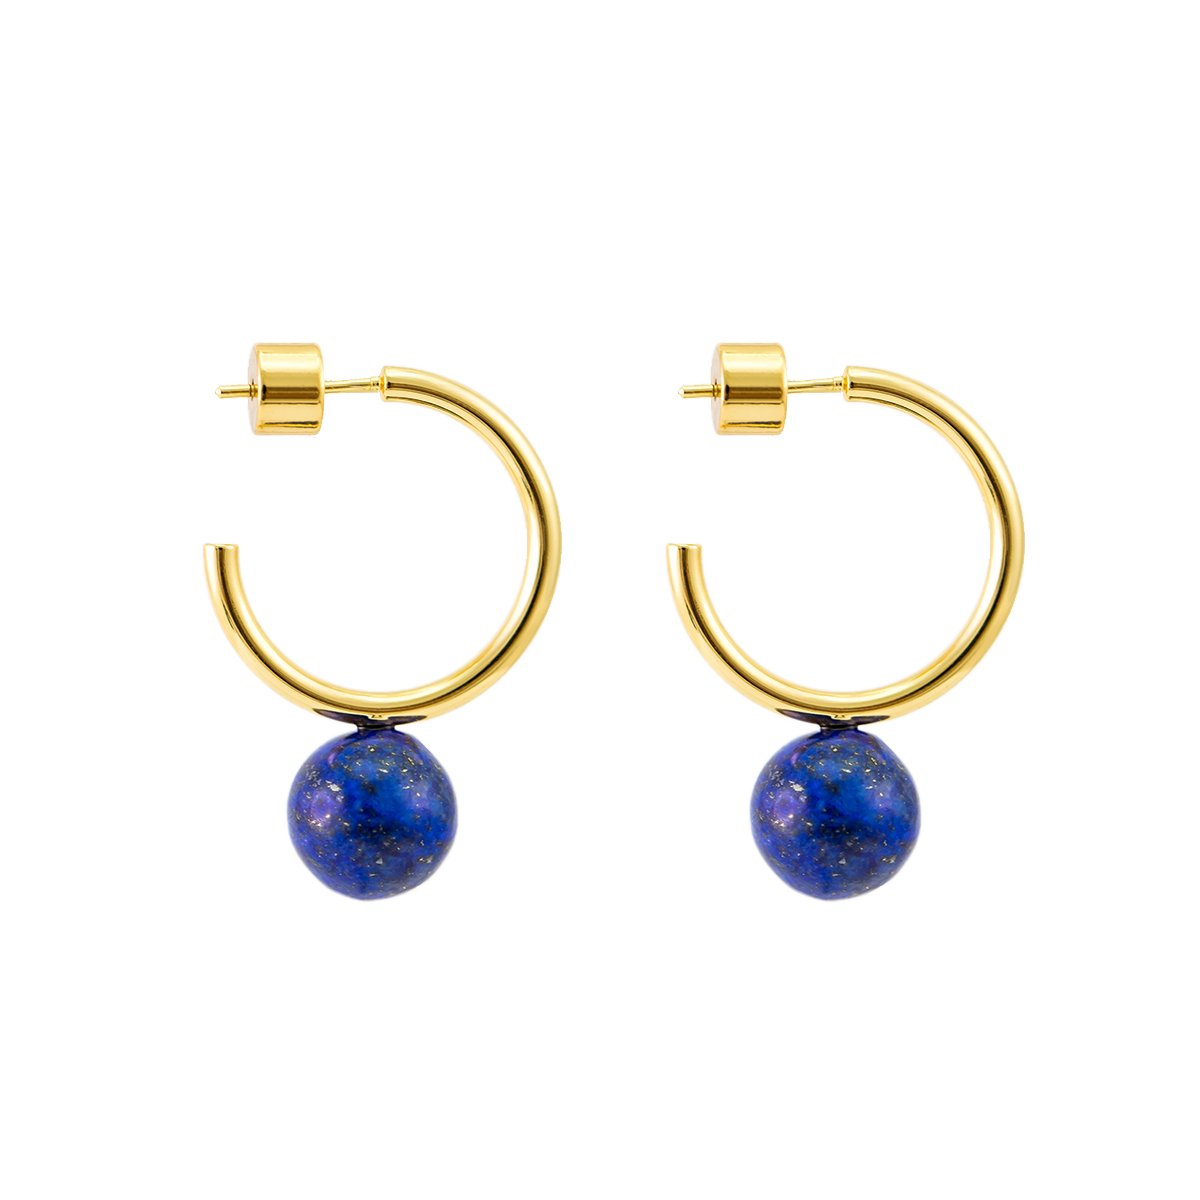 925 Sterling Silver Post 14k Gold Plated Open Cuff Hoop Earrings Natural Gemstone Pearl Hooped Stud Post Minimalist Earrings for Women Ladies Girls Gifts (Small C Shape Gold & Lapis Lazuli)